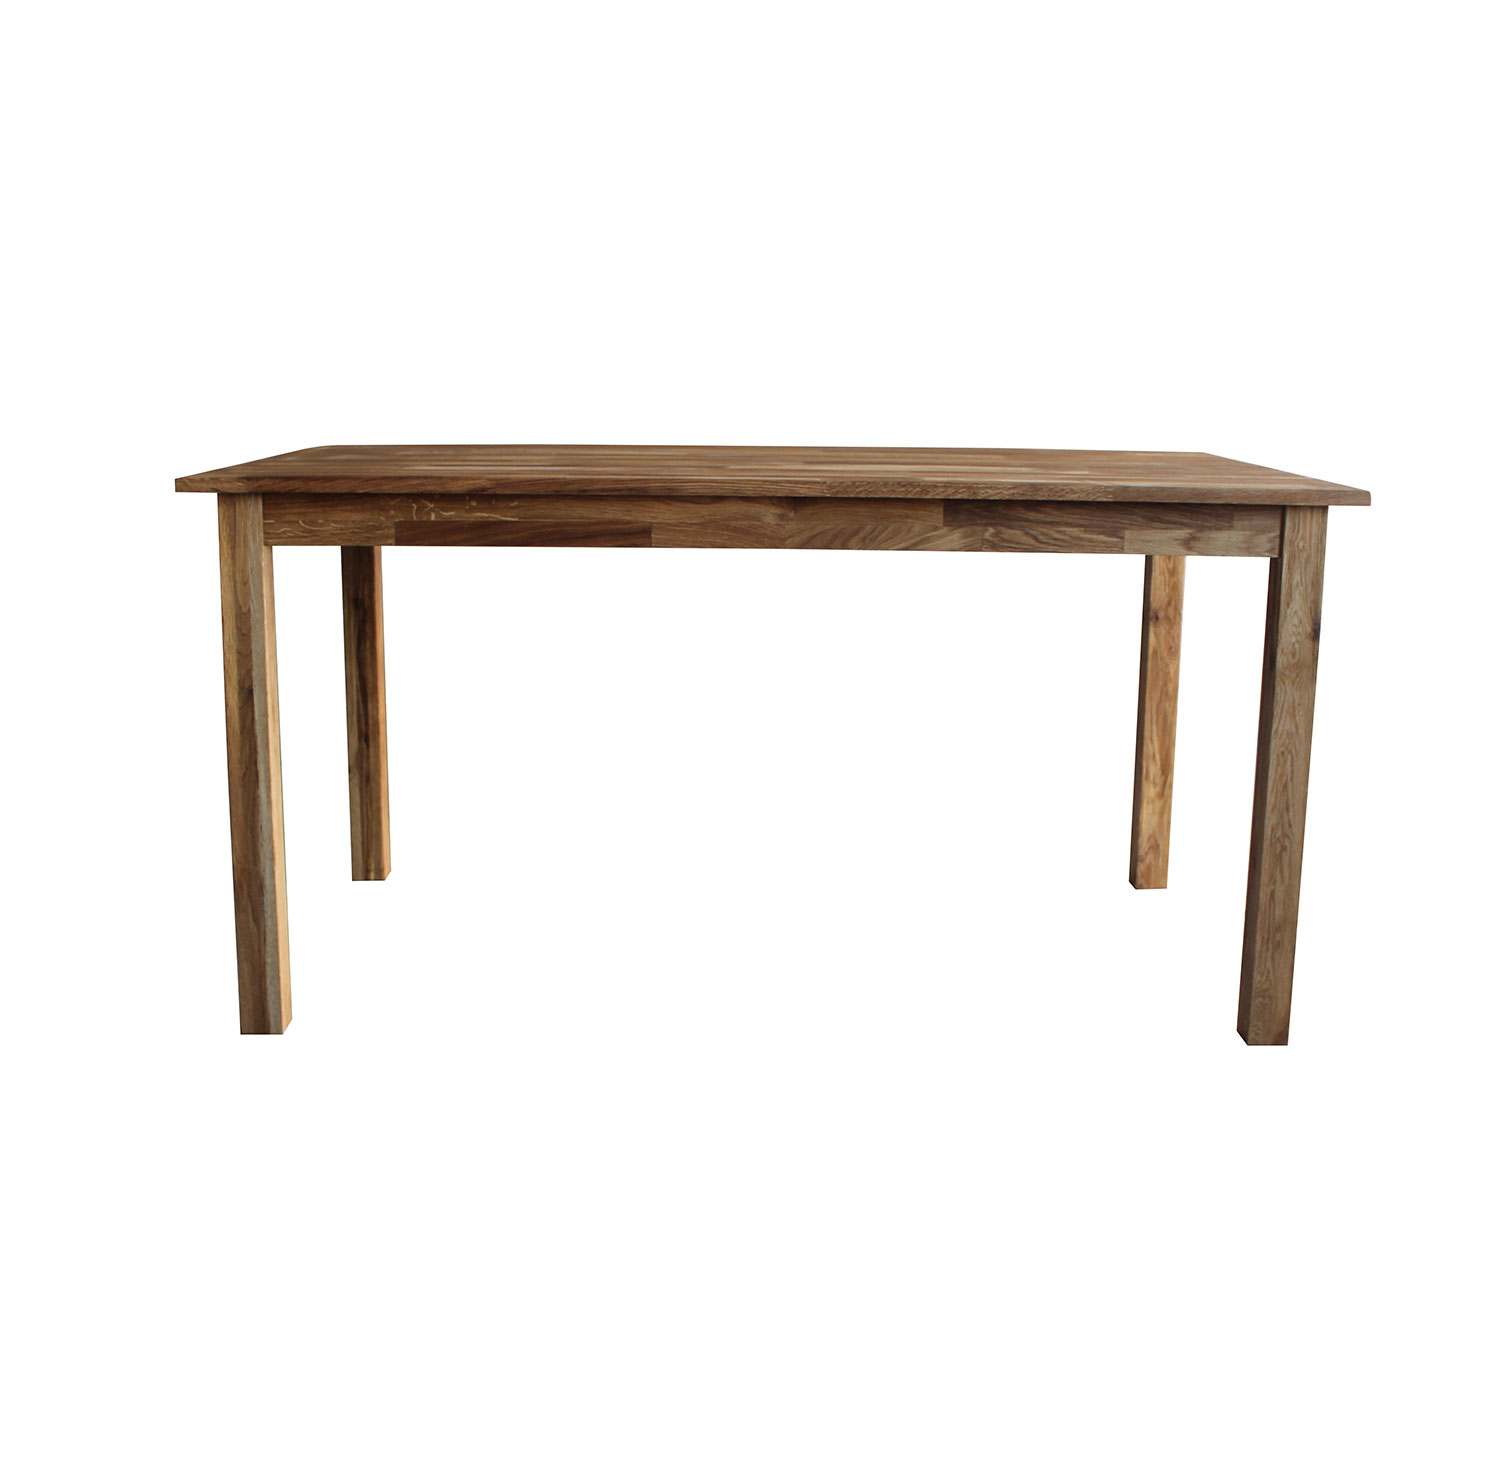 solid oak 6 8 seater wooden dining table rectangular 150cm lngth